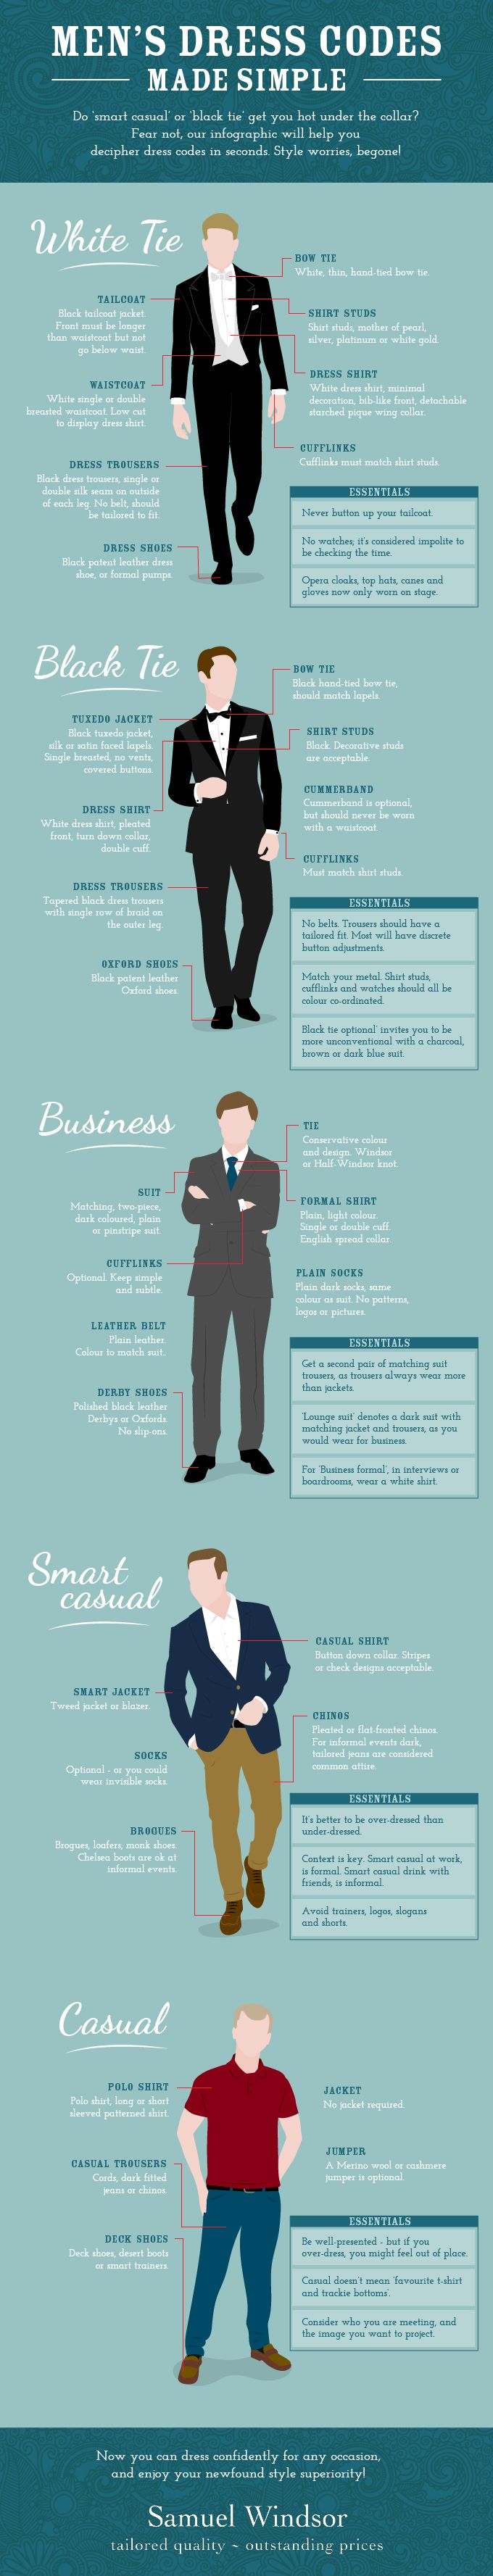 Men's Dress Codes Made Simple [Infographic], via @HubSpot